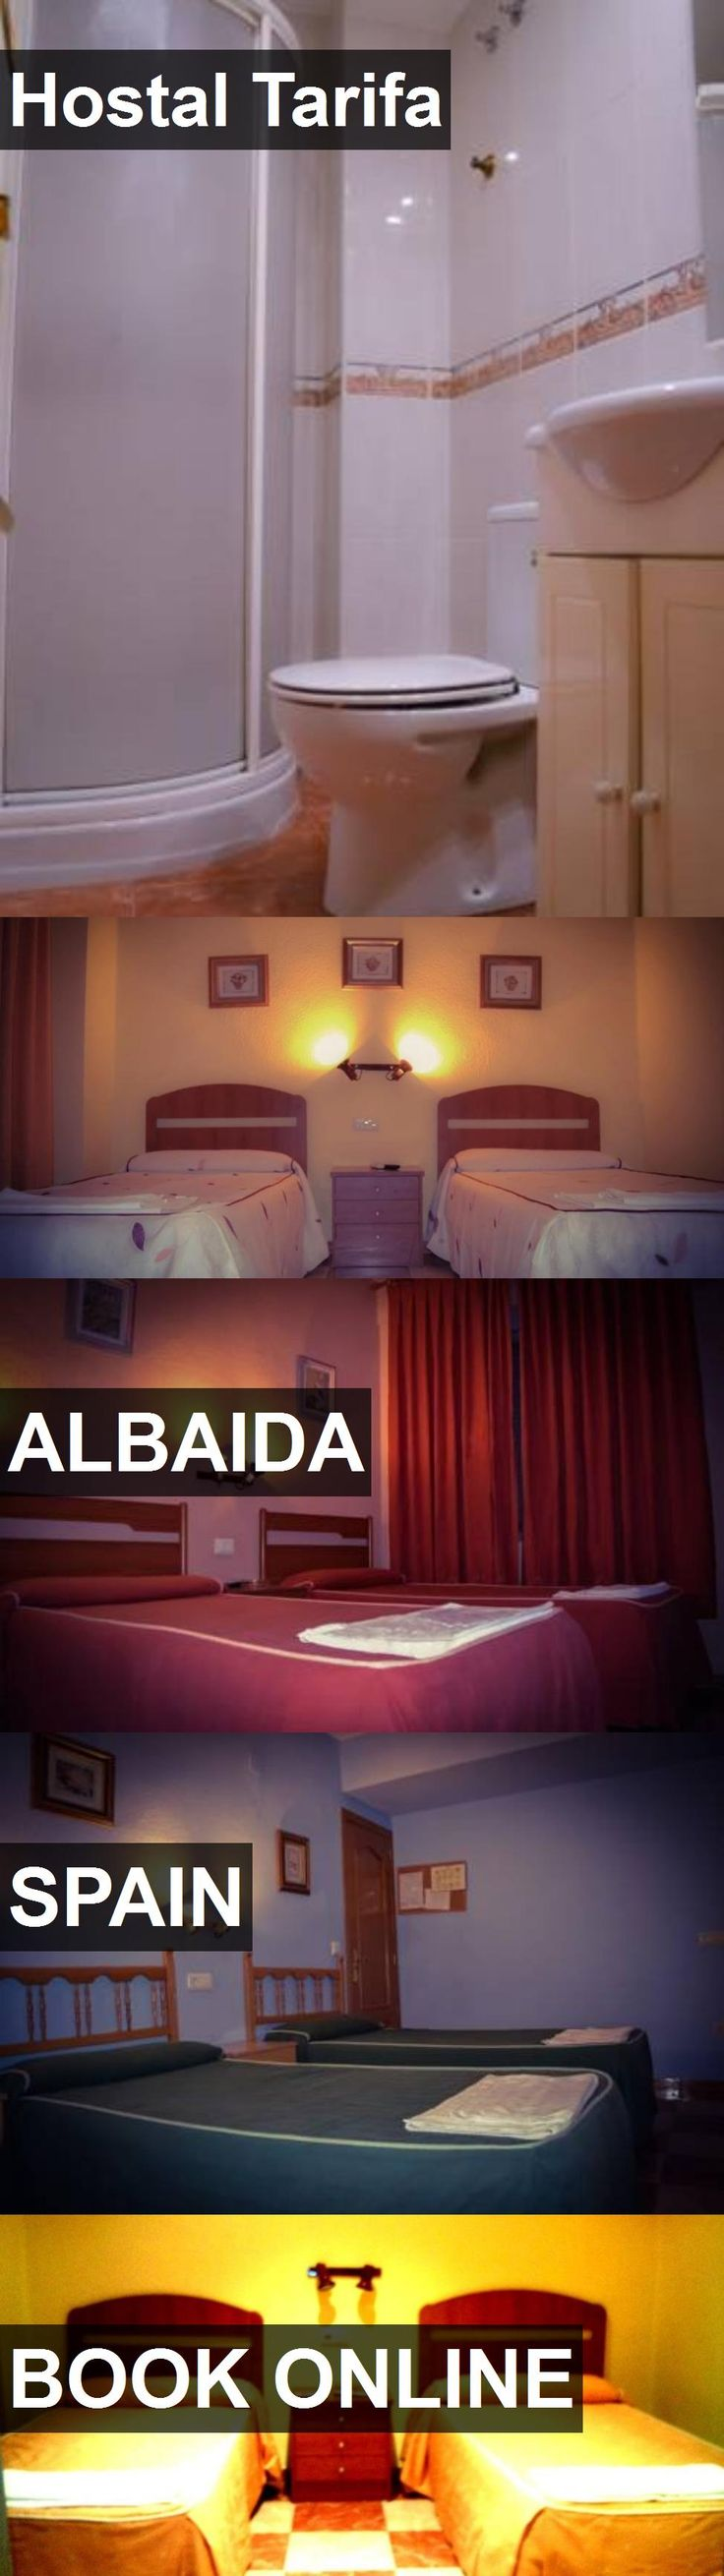 Hotel Hostal Tarifa in Albaida, Spain. For more information, photos, reviews and best prices please follow the link. #Spain #Albaida #travel #vacation #hotel